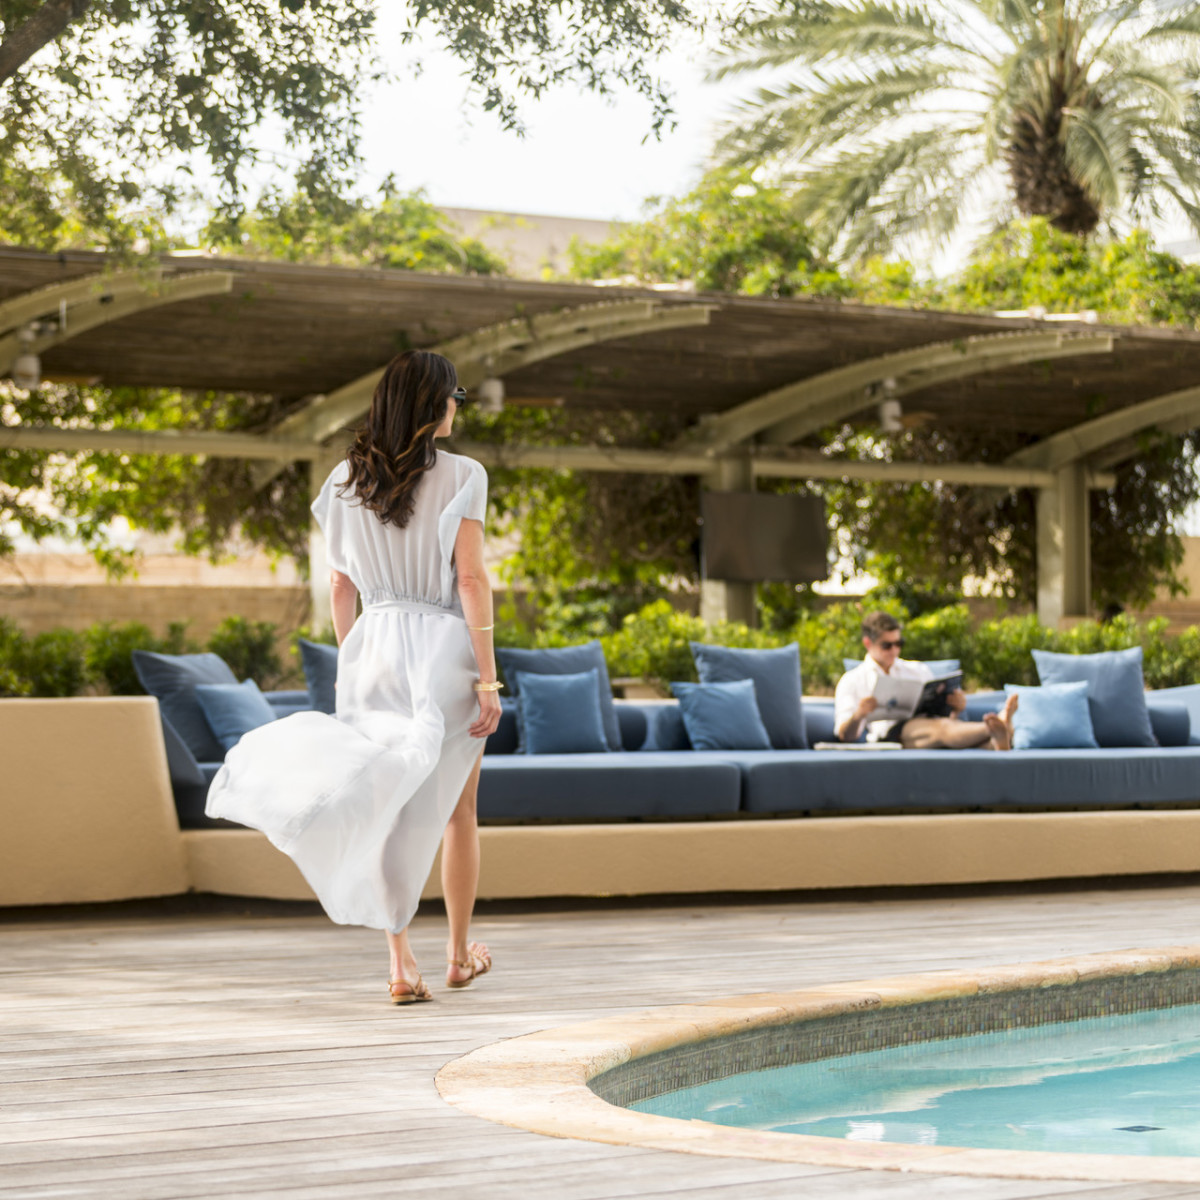 8 most indulgent Houston day spas to relax, recharge, and repeat